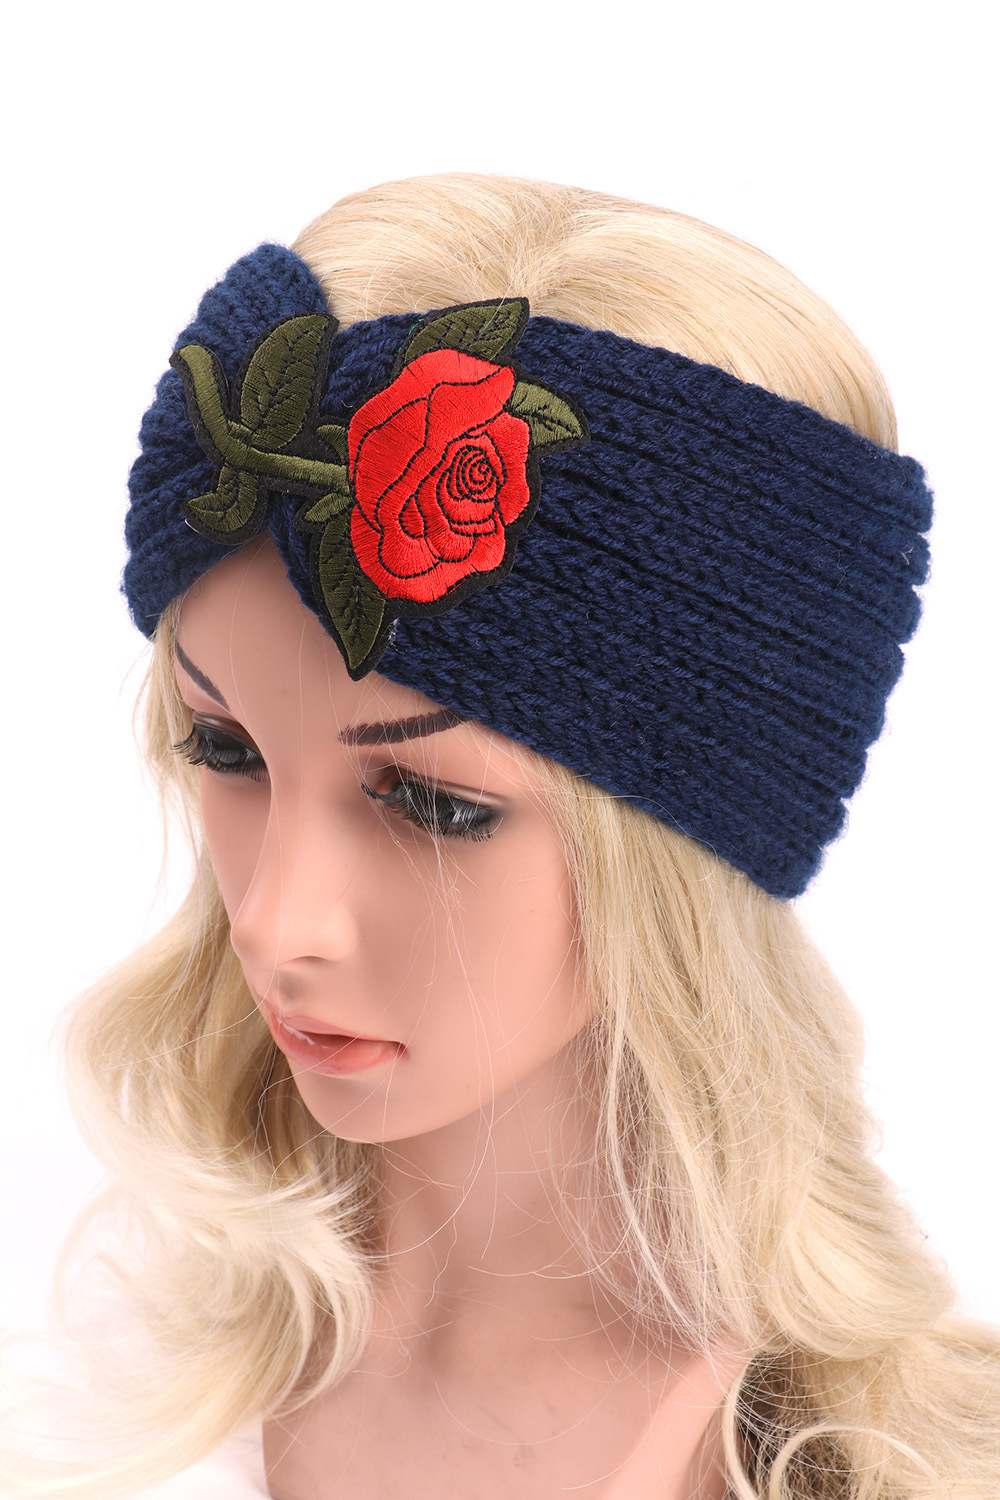 New Style Women Embroidered Knitted Hair Ribbon Winter Wool Warm Crochet Bow Headband For Lady Women Head Bands Hair Accessories